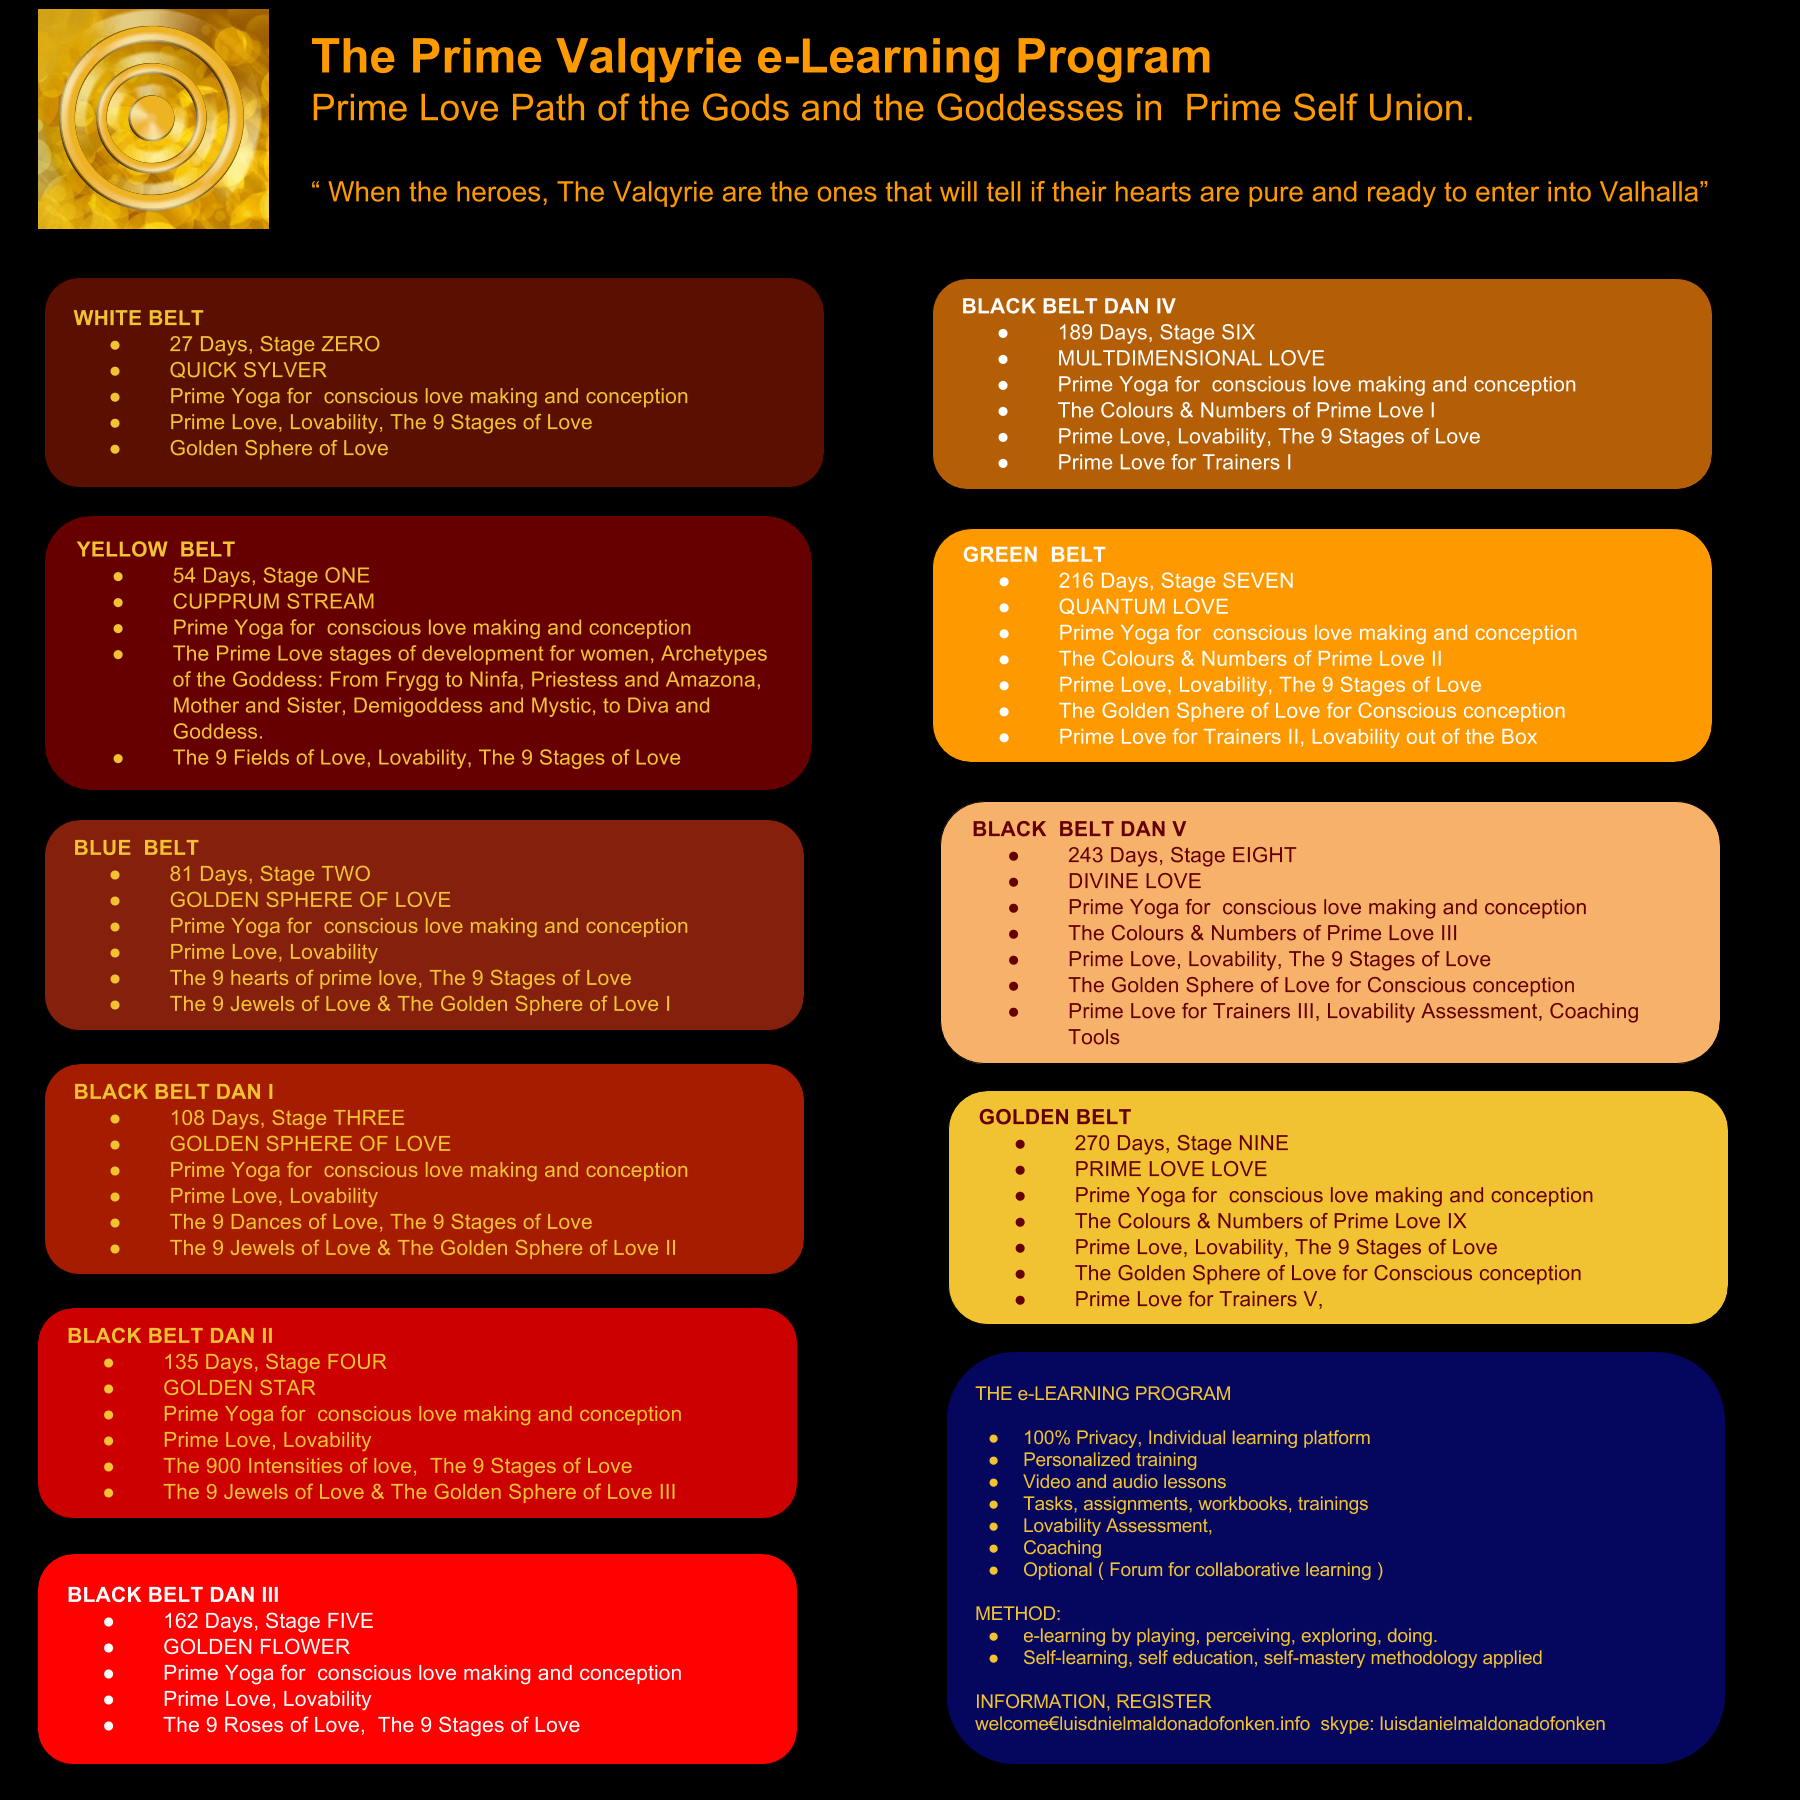 The Prime Valqyrie e-Learning Program